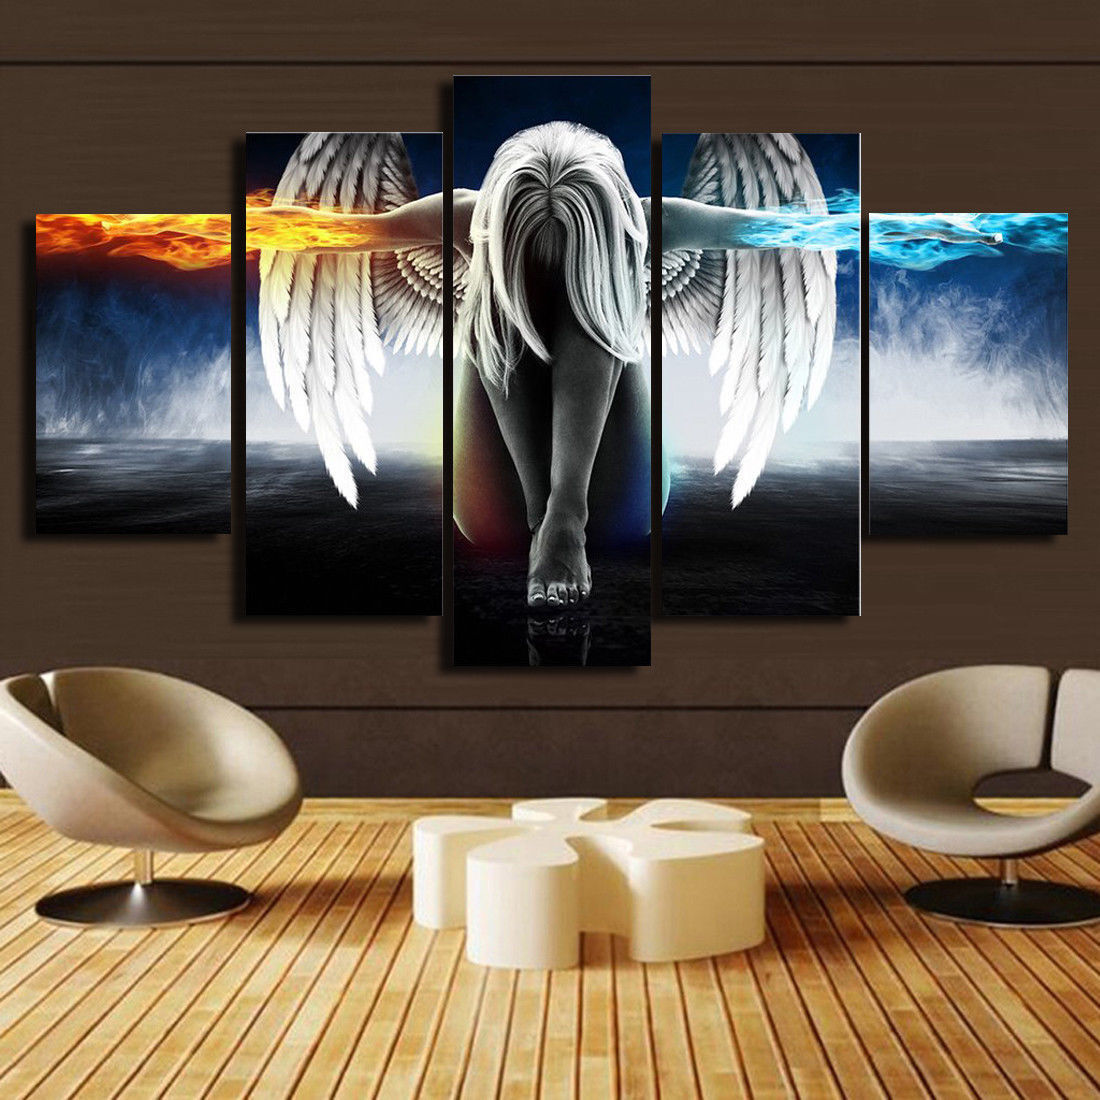 4 PANEL TOTAL 138x78cm  CANVAS WALL ART ABSTRACT PRINT MOUNTED EFFECT FIRE BROWN